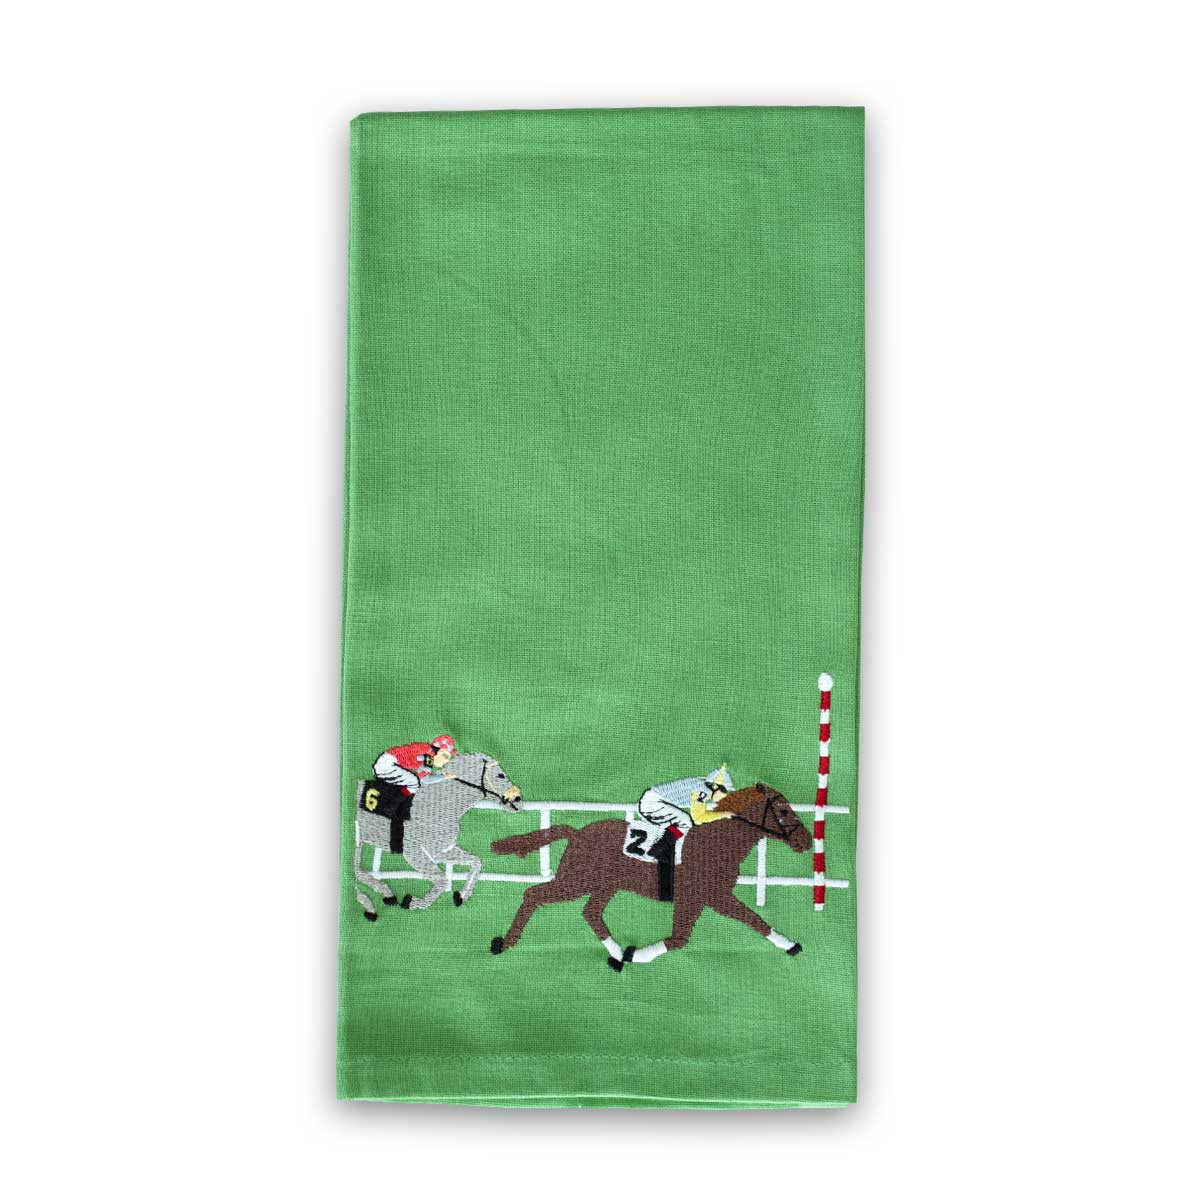 Finish Line Embroidered Hand Towel Set of 2